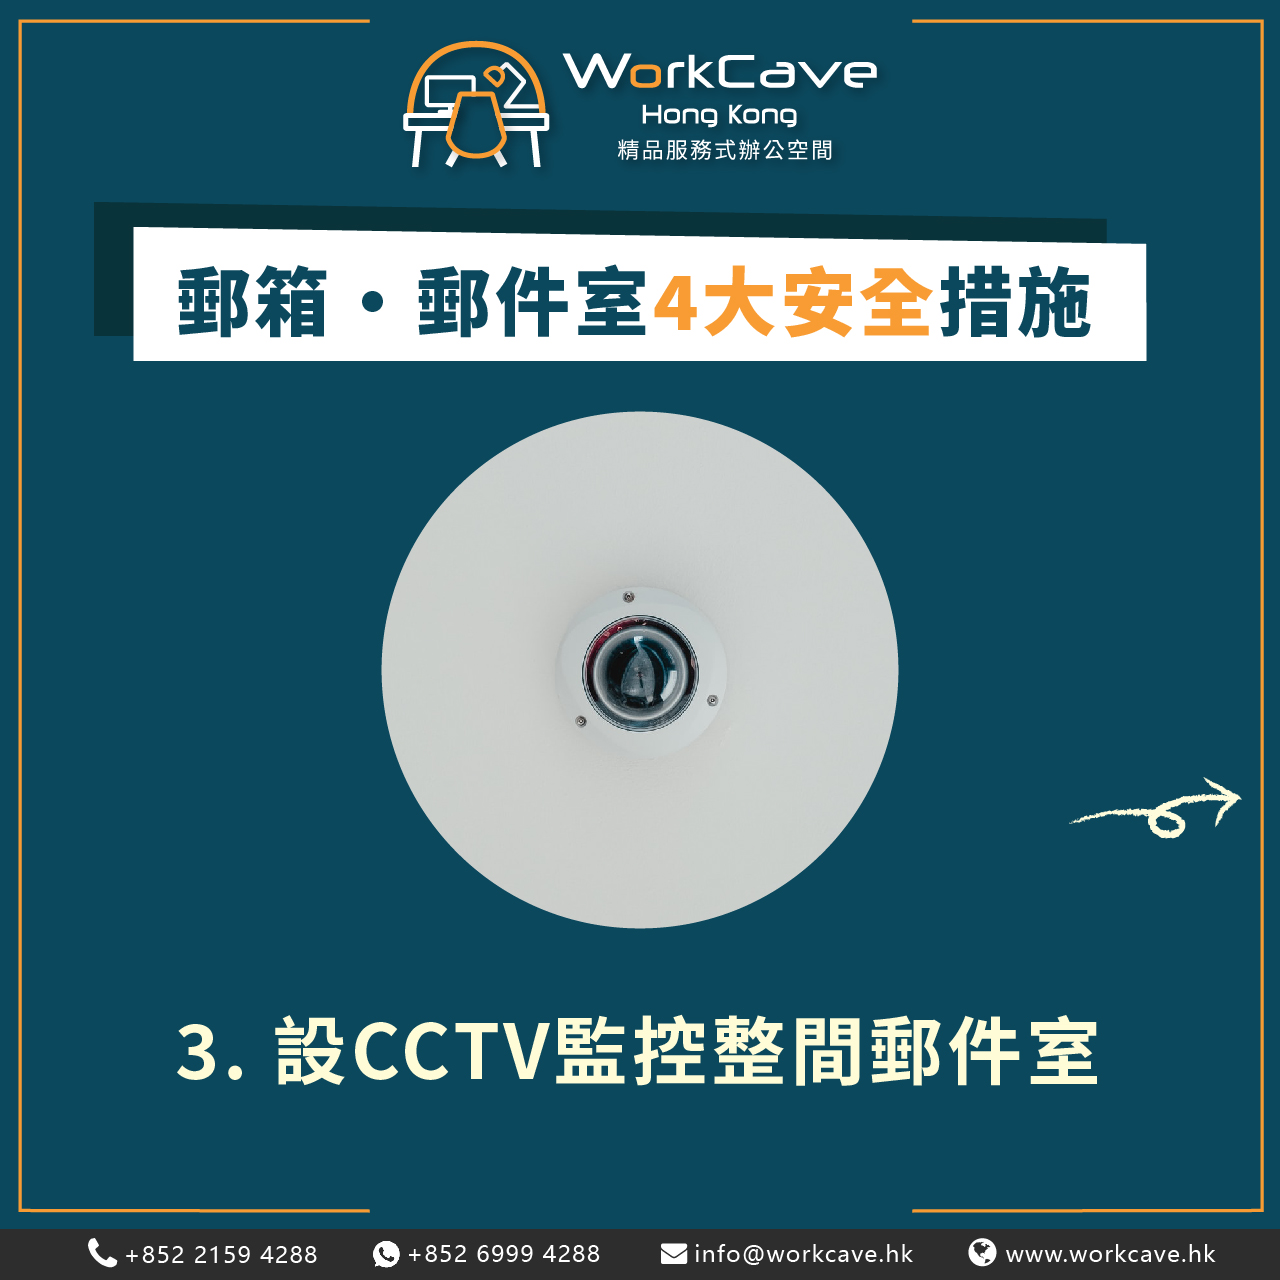 CCTV in mail room